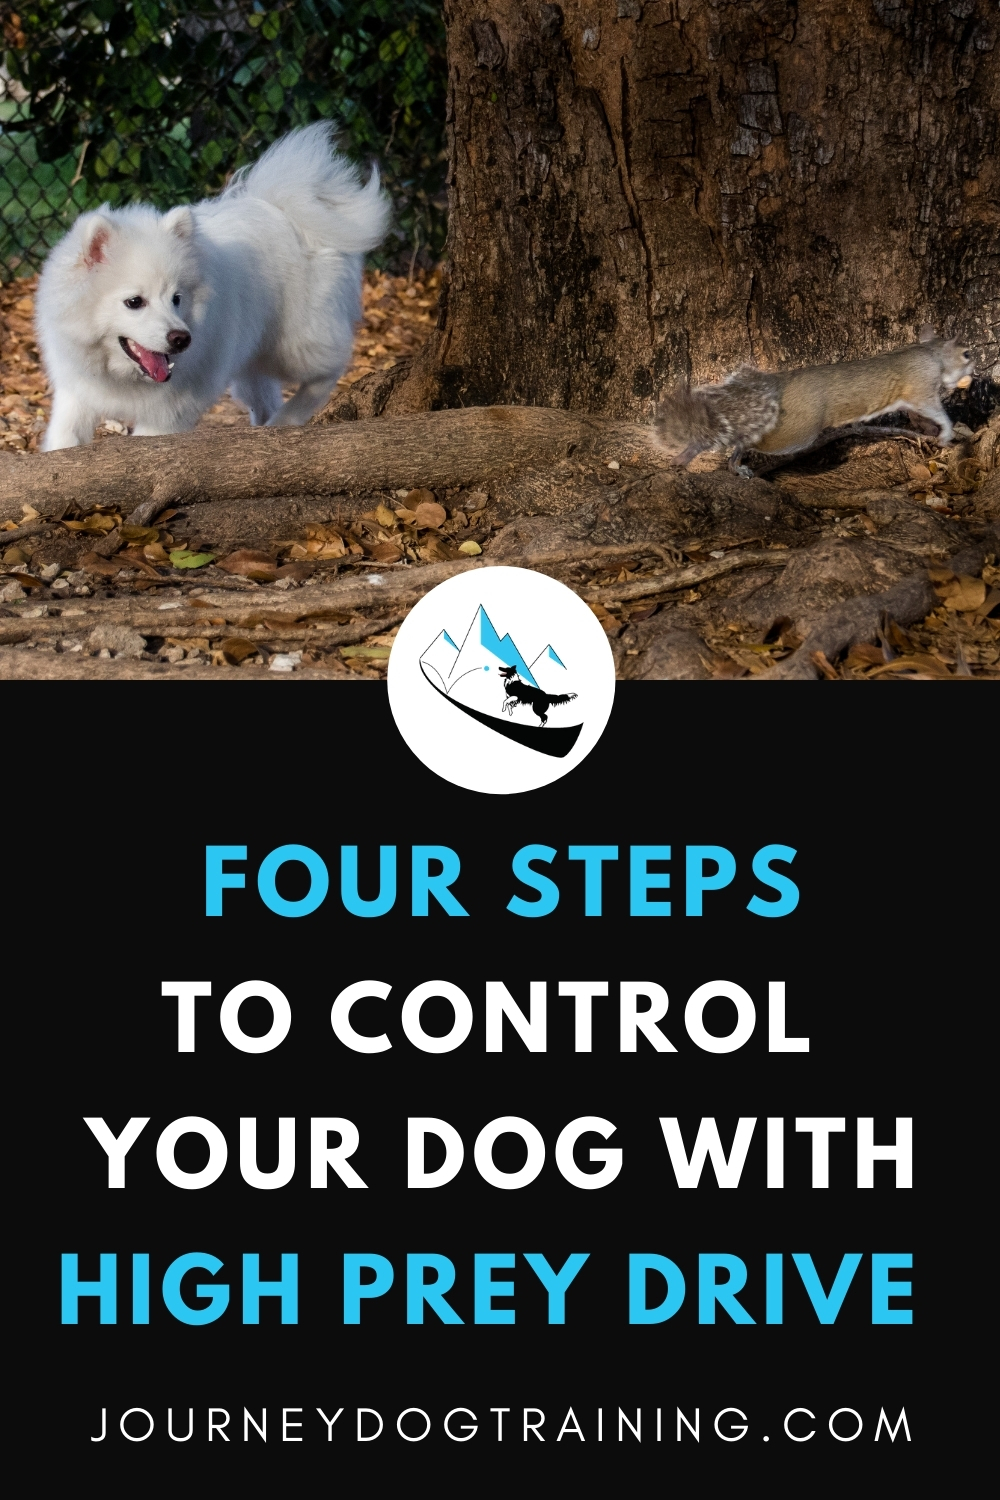 four steps to control your dog with high prey drive |journeydogtraining.com